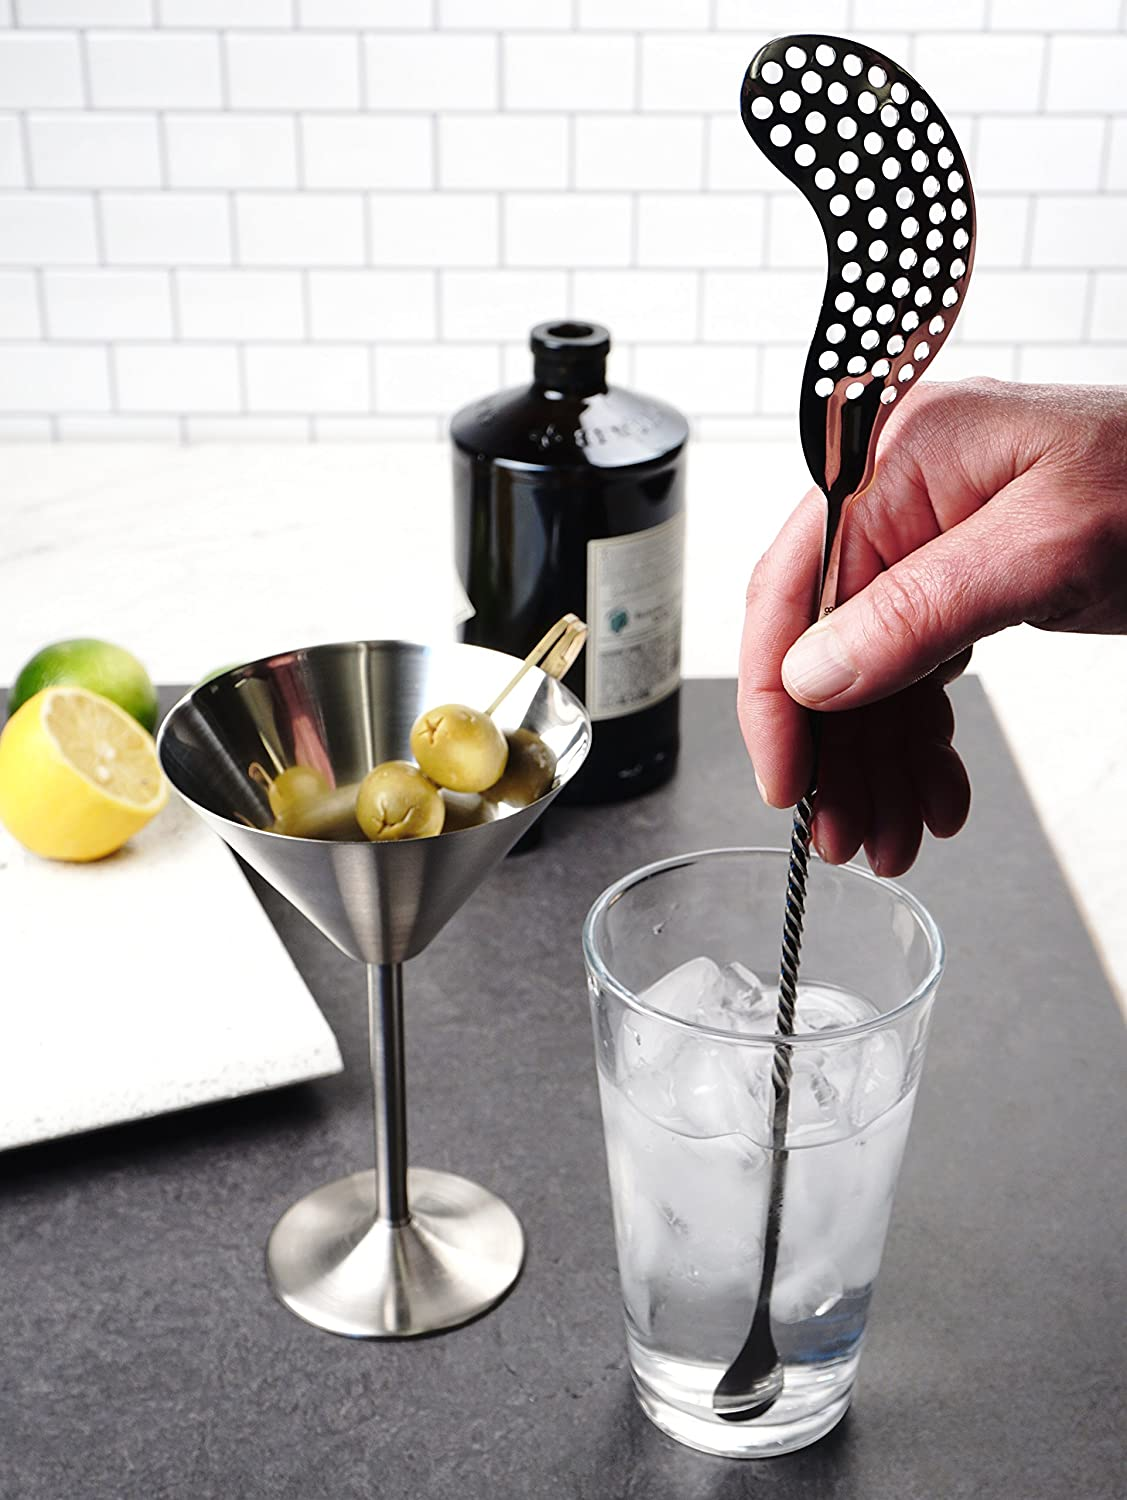 For Mojitos Great Addition to Bars /& Kitchens Cocktails /& More /& More Herbs Mash Fruits Stainless Steel Handling Cocktail Mojito Muddler Ice RSVP International Endurance MUDD Margaritas